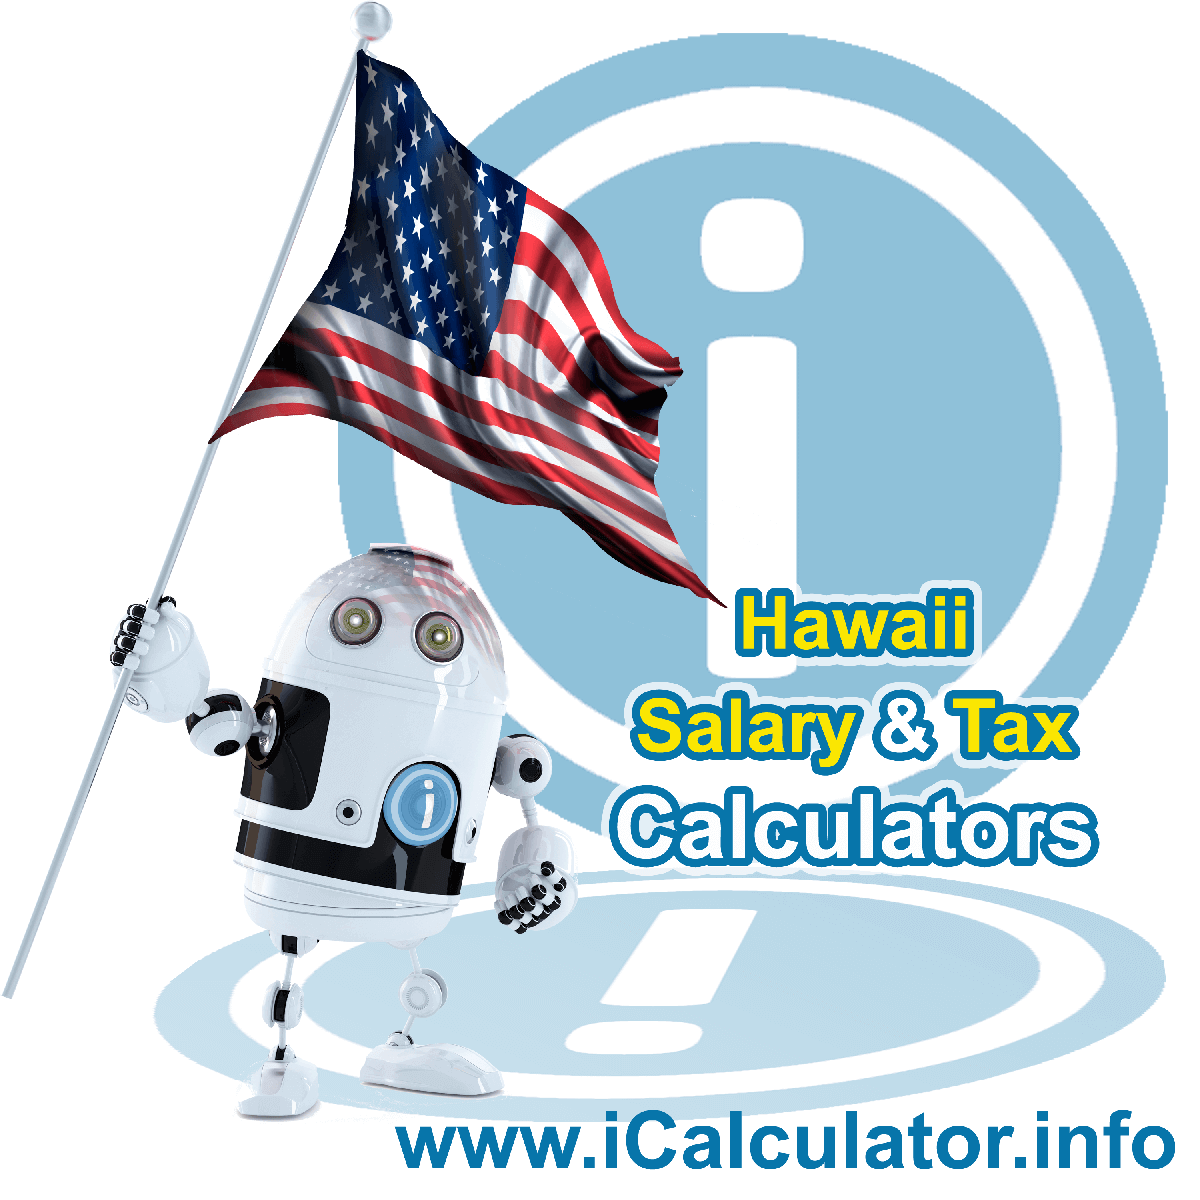 Hawaii Salary Calculator 2019 | iCalculator | The Hawaii Salary Calculator allows you to quickly calculate your salary after tax including Hawaii State Tax, Federal State Tax, Medicare Deductions, Social Security, Capital Gains and other income tax and salary deductions complete with supporting Hawaii state tax tables